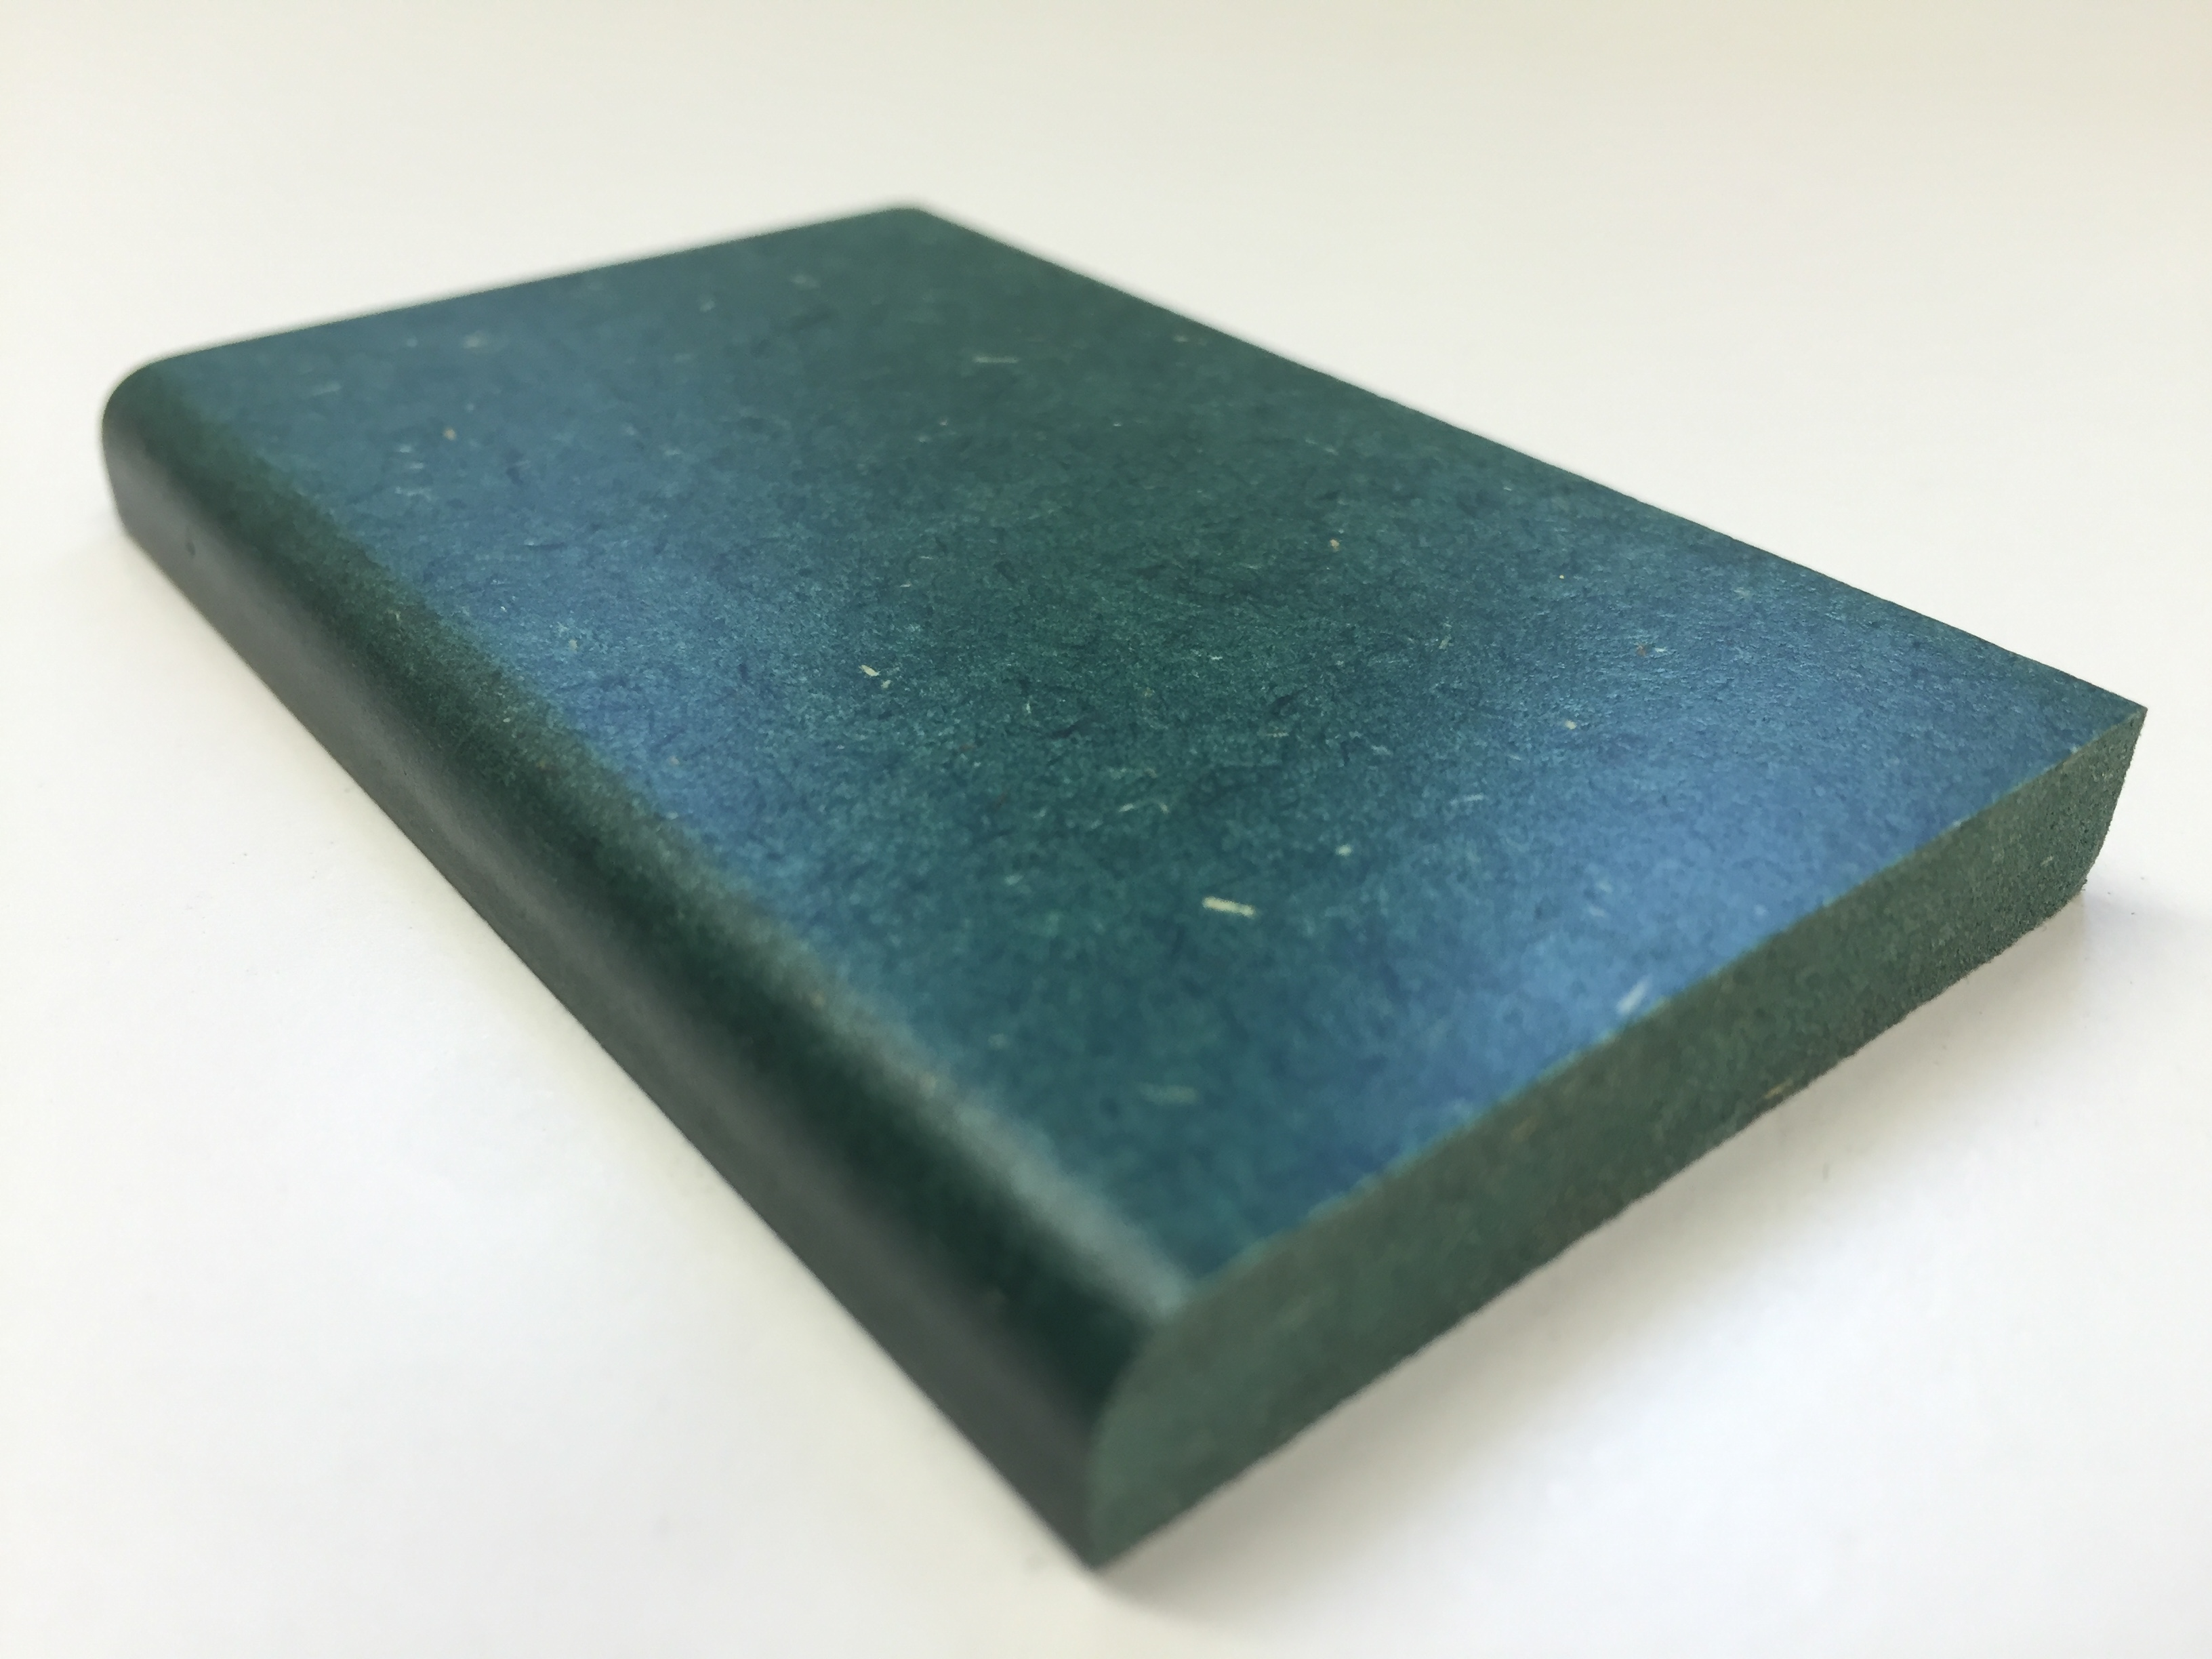 Mdf valchromat green mint mdf valchromat colored for Mdf colors